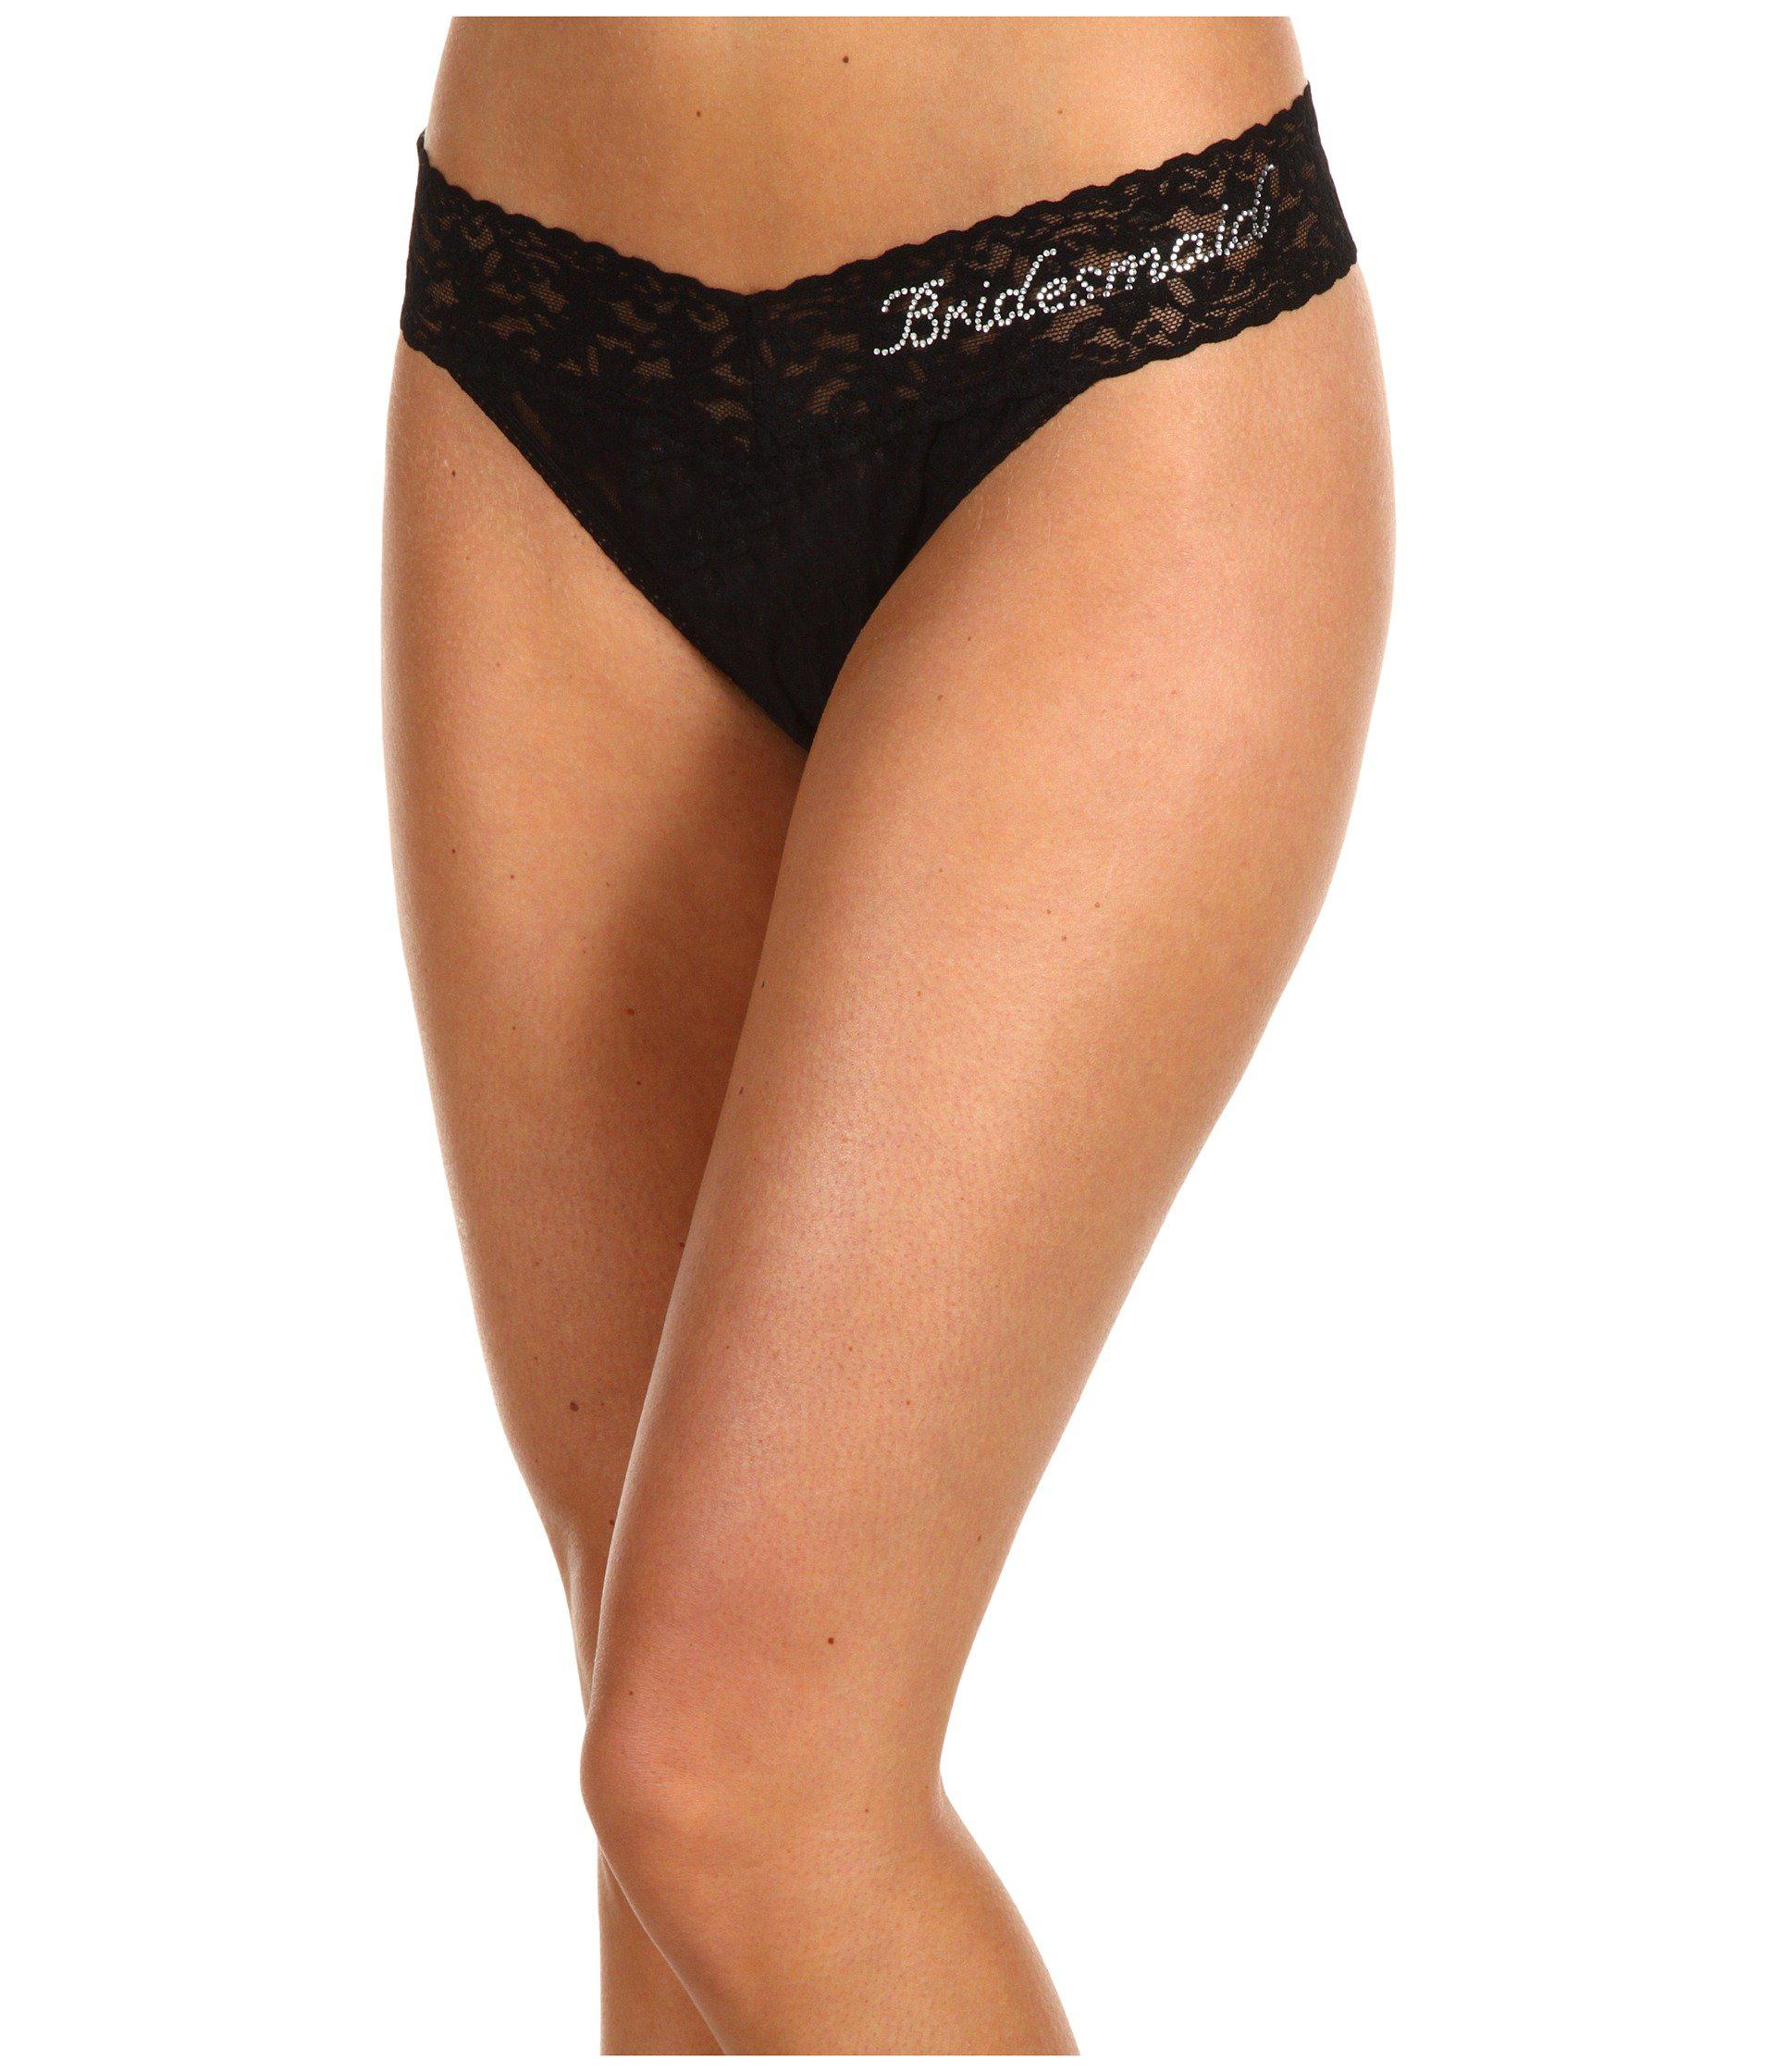 659e070eaddd7f Hanky Panky. Bridesmaid Original Rise Bridal Party Thong (black clear)  Women s Underwear